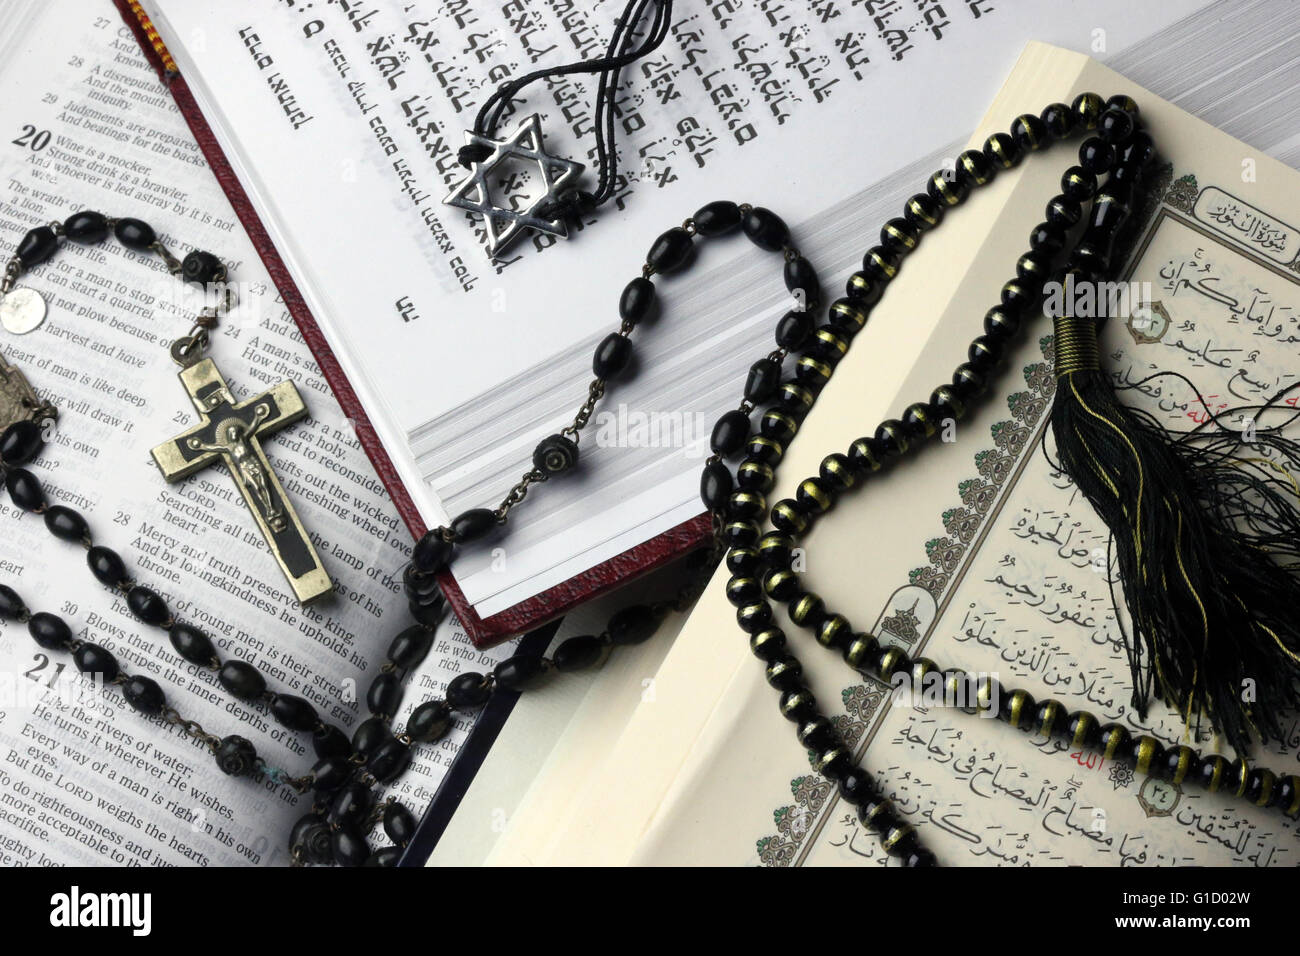 Christianity, Islam and Judaism : 3 monotheistic religions. Bible, Quran and Bible. Interfaith symbols.  France. - Stock Image